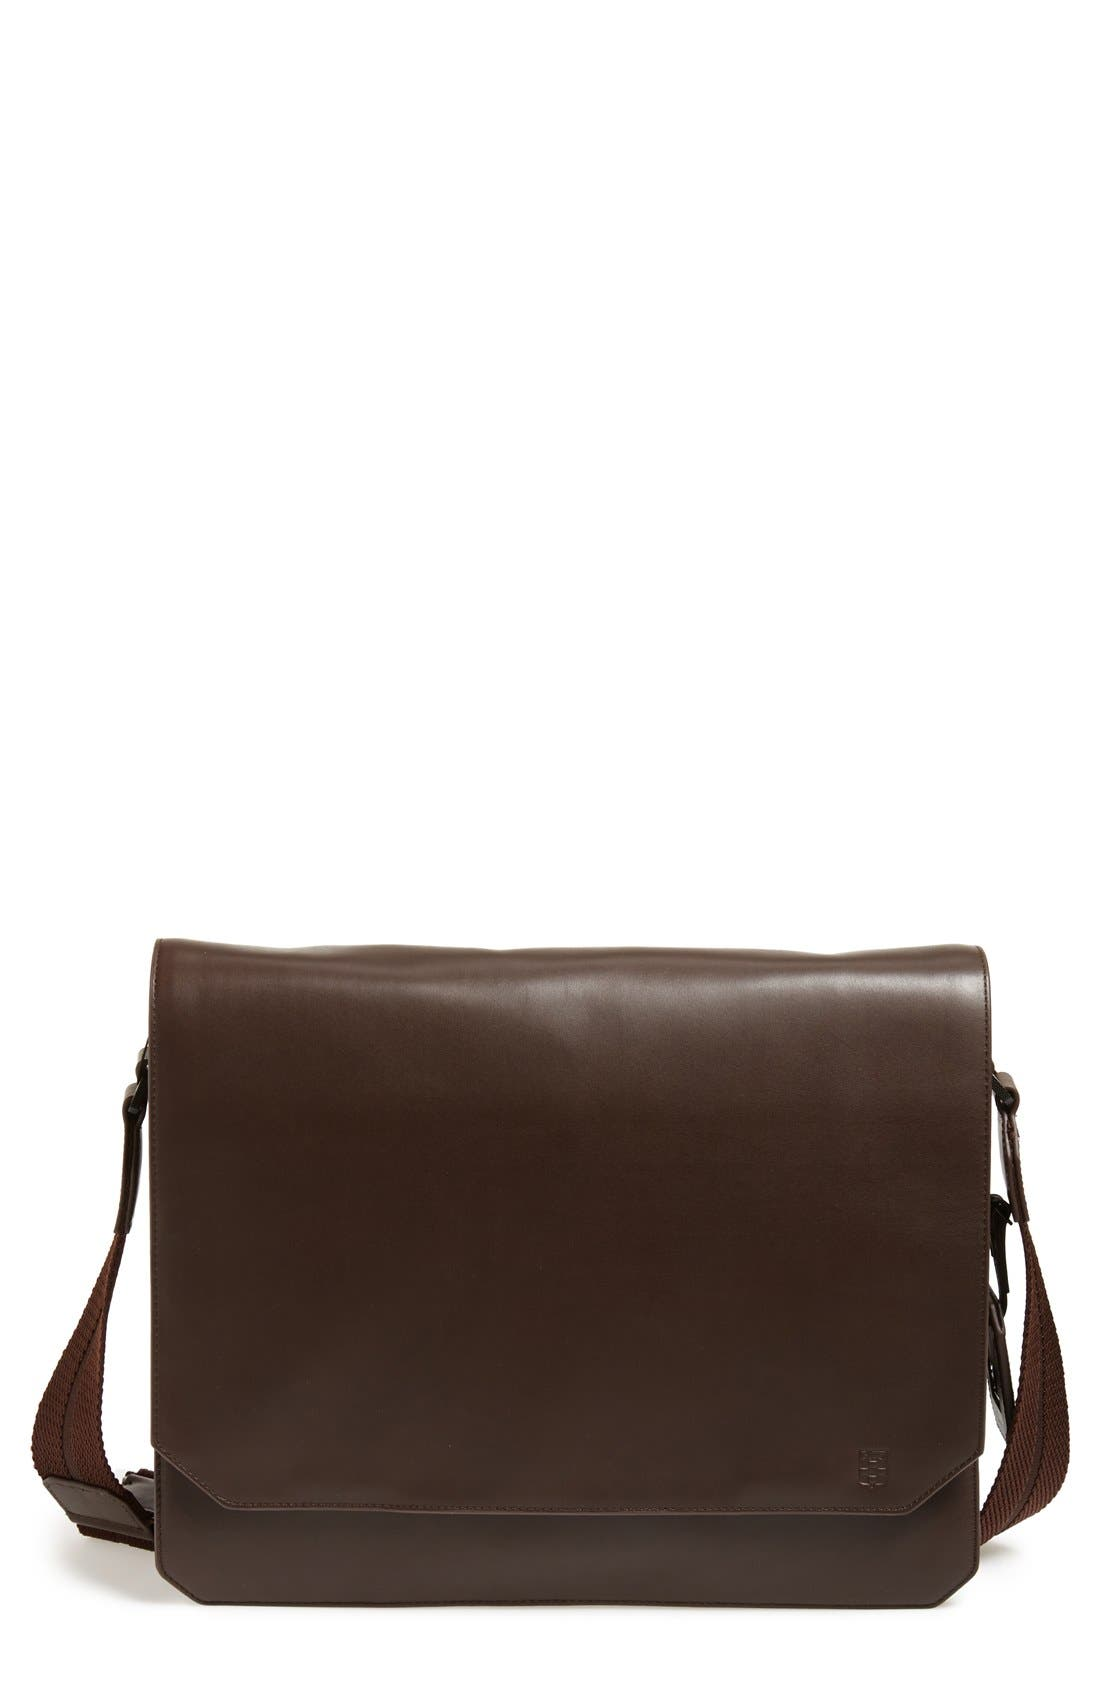 Vince Camuto 'Tolve' Leather Messenger Bag